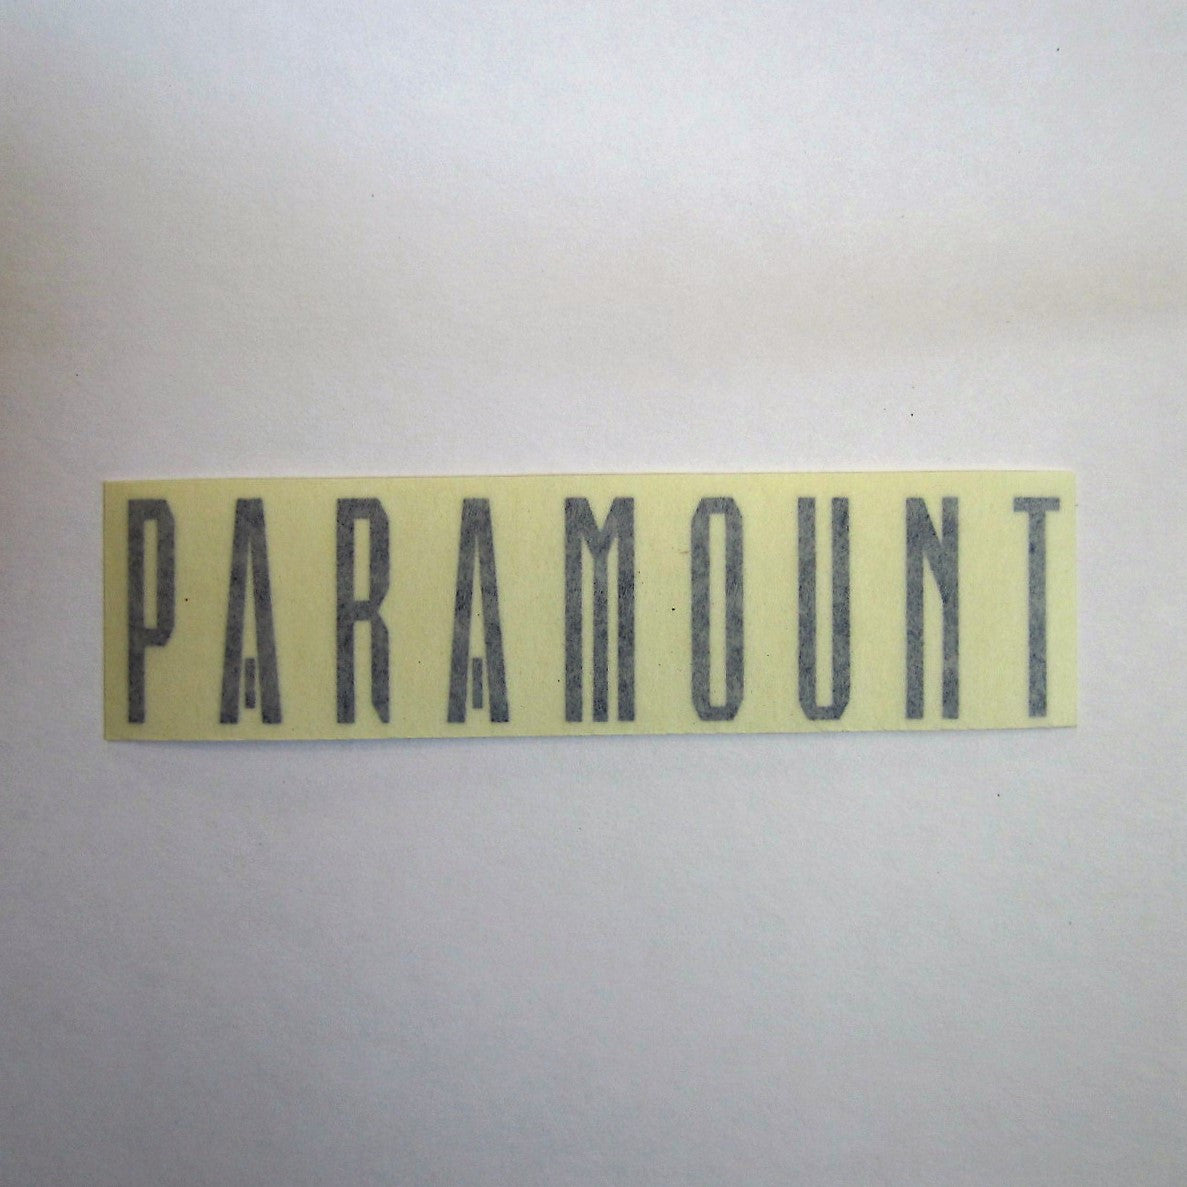 "Paramount Decal Blue 5-1/4"" x 1-1/4"""